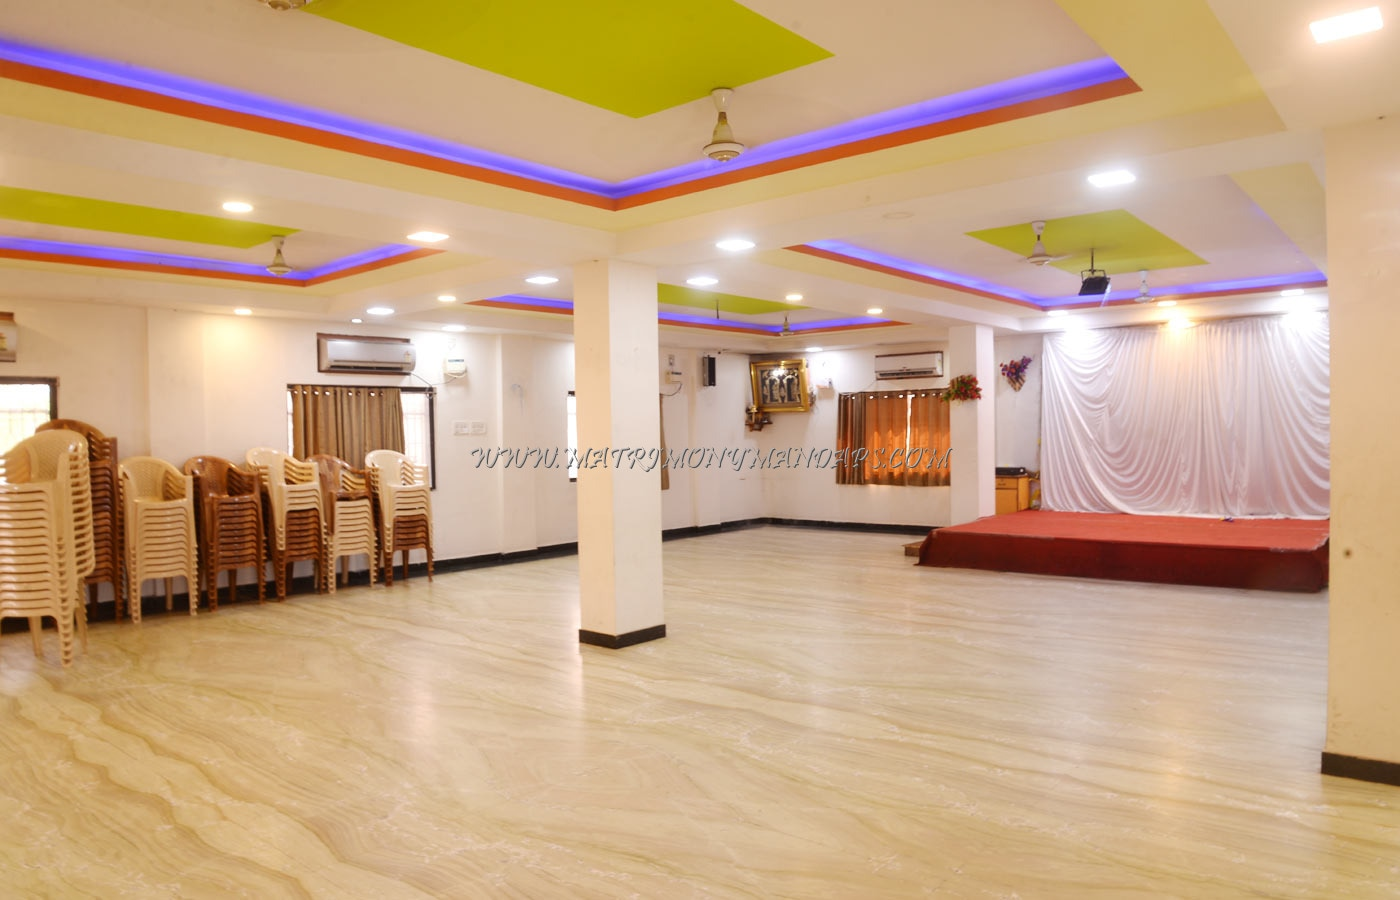 Find the availability of the Mahalakshmi Banquet Hall (A/C) in Kilpauk, Chennai and avail special offers